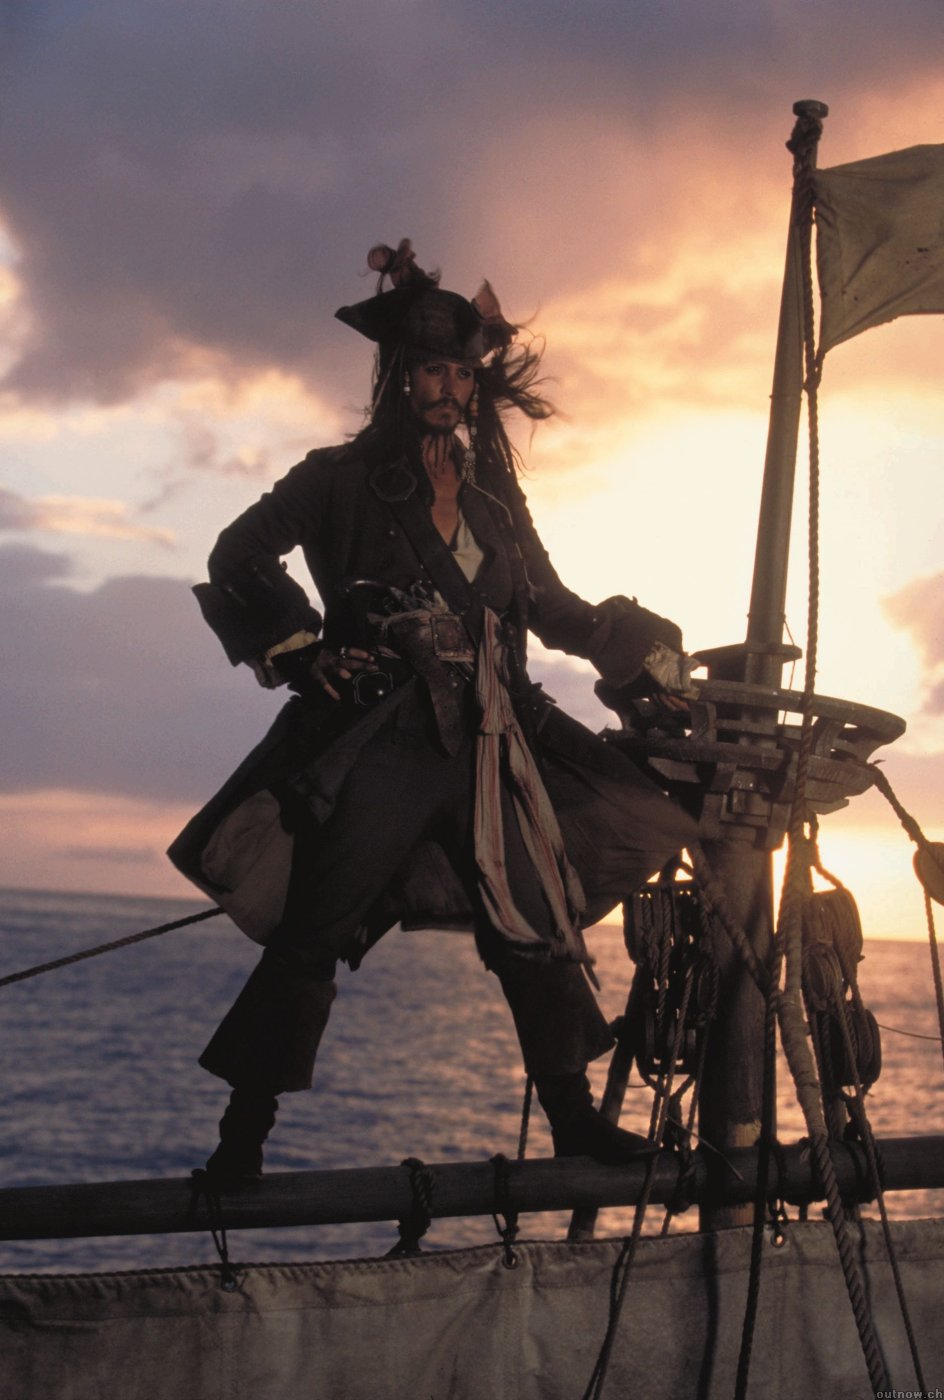 Pirates of the carrbiannudesexwallpaperphotopictures hentia pics